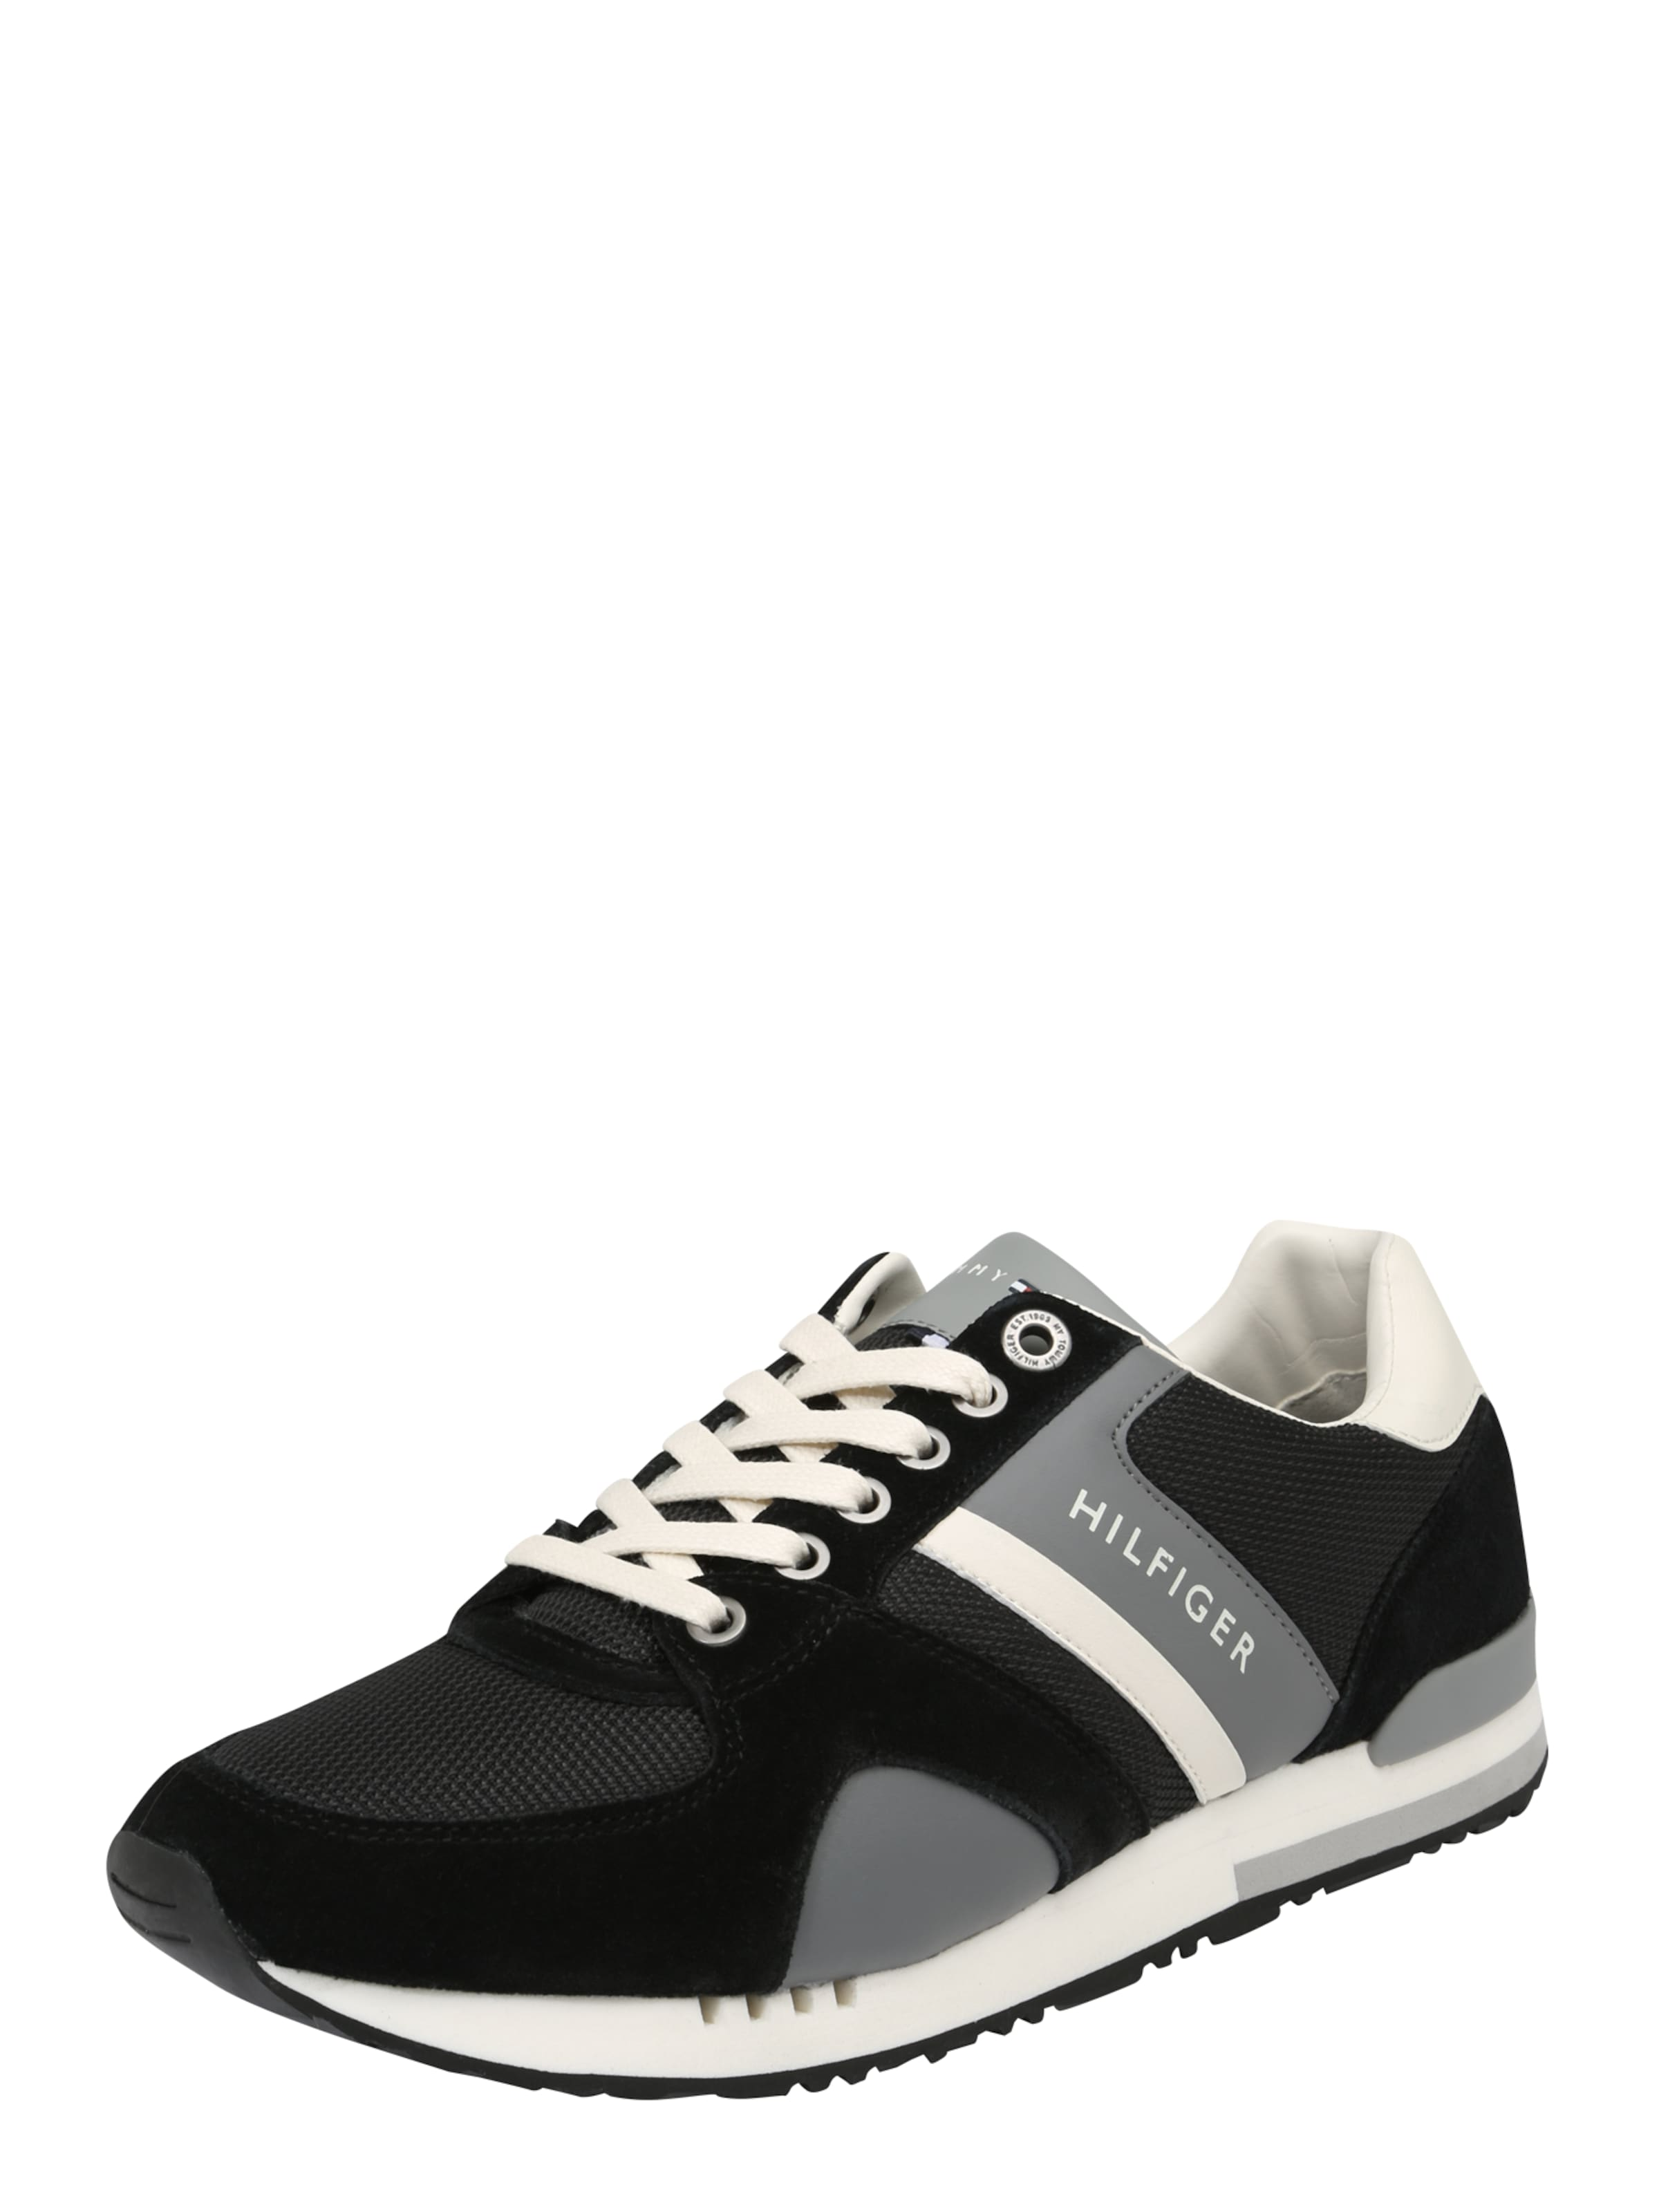 TOMMY HILFIGER Sneaker NEW ICONIC RUNNER